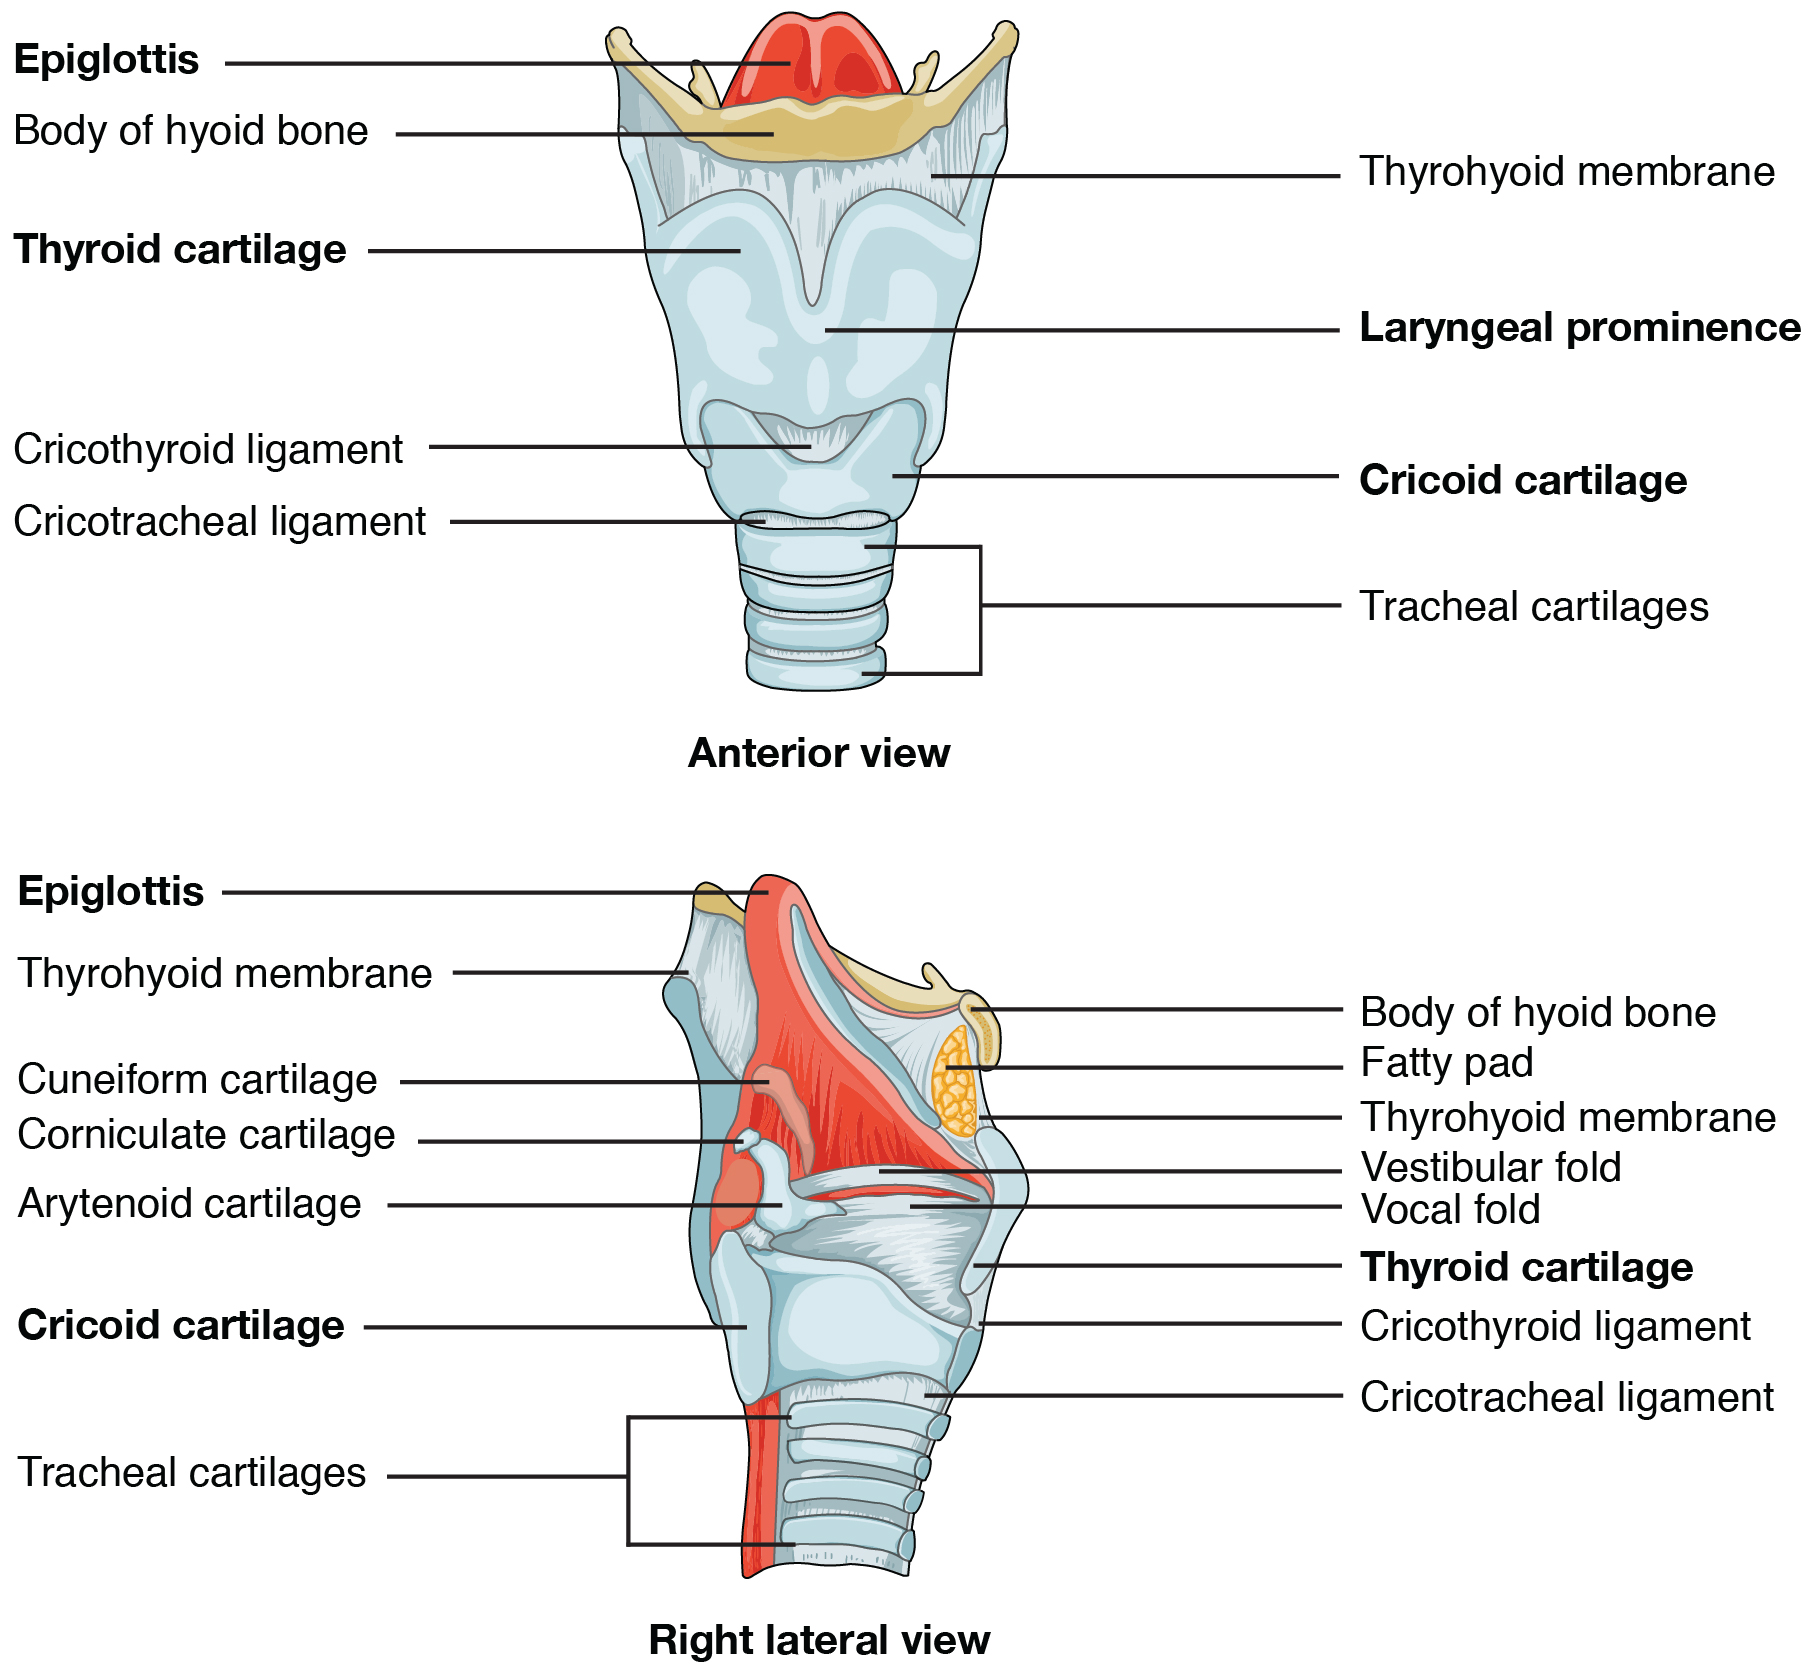 The top panel of this figure shows the anterior view of the larynx, and the bottom panel shows the right lateral view of the larynx.